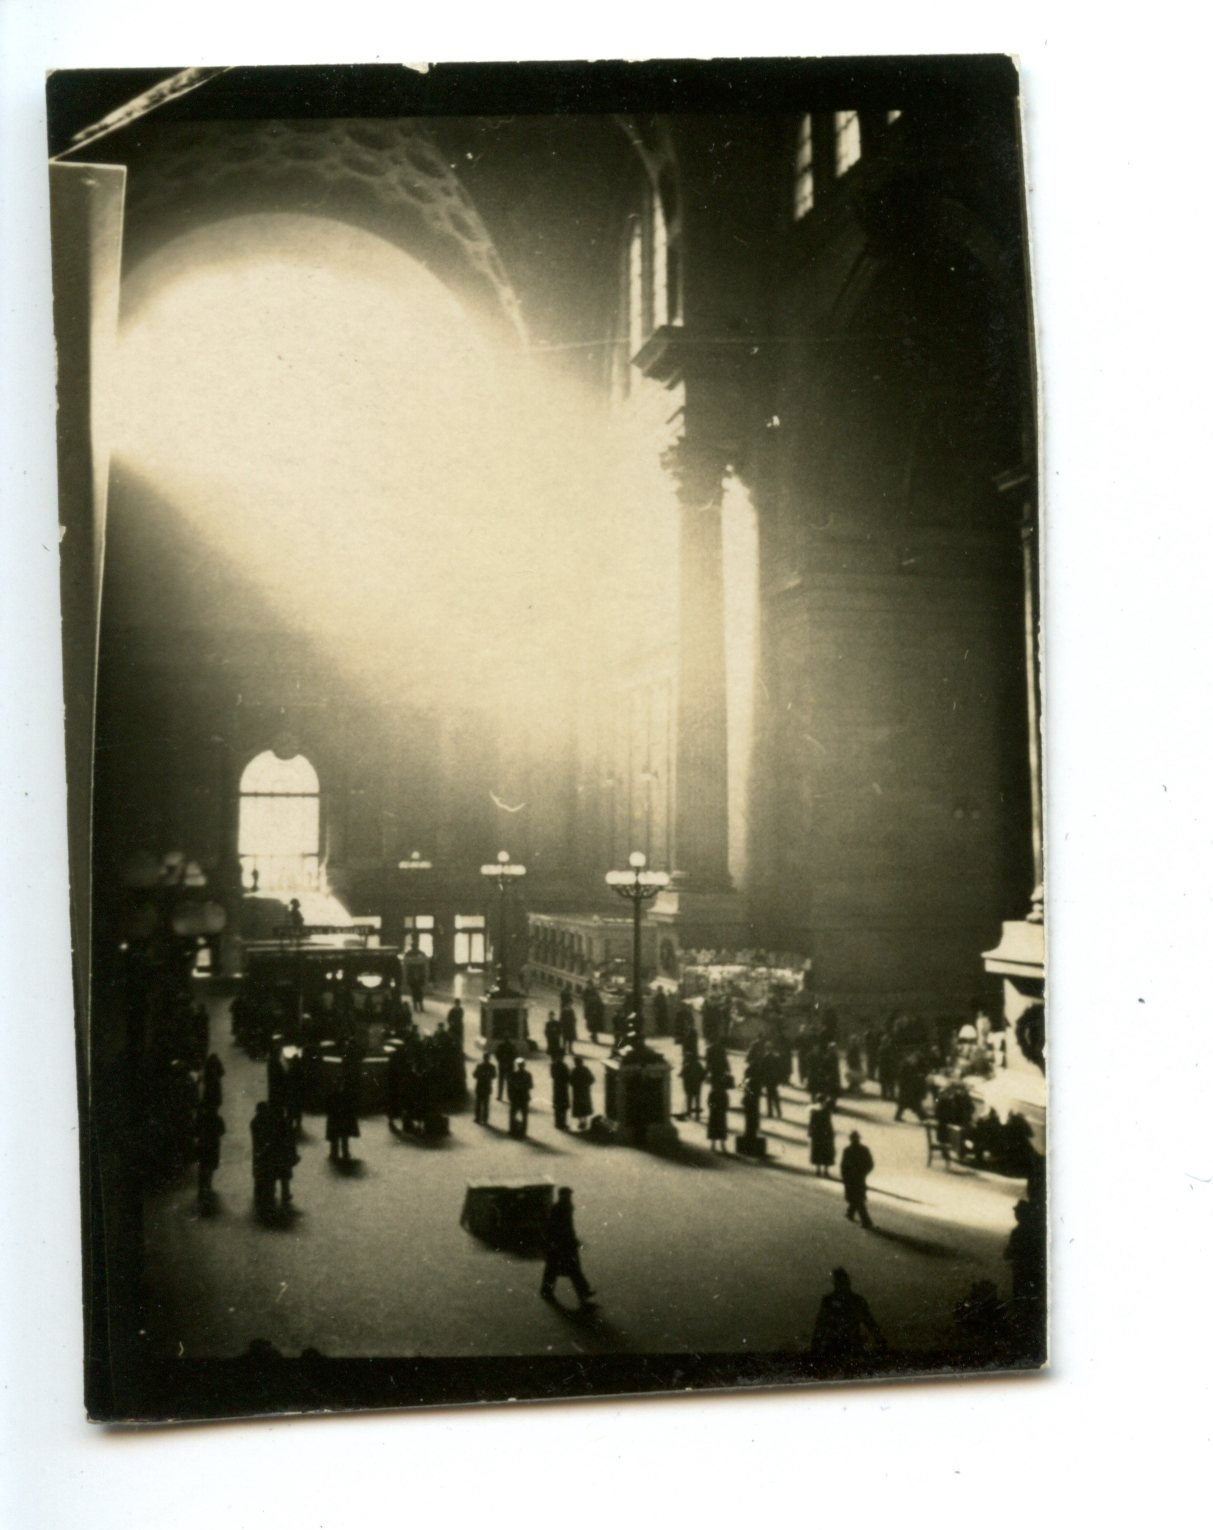 Grand Central Interior with Halo of Light